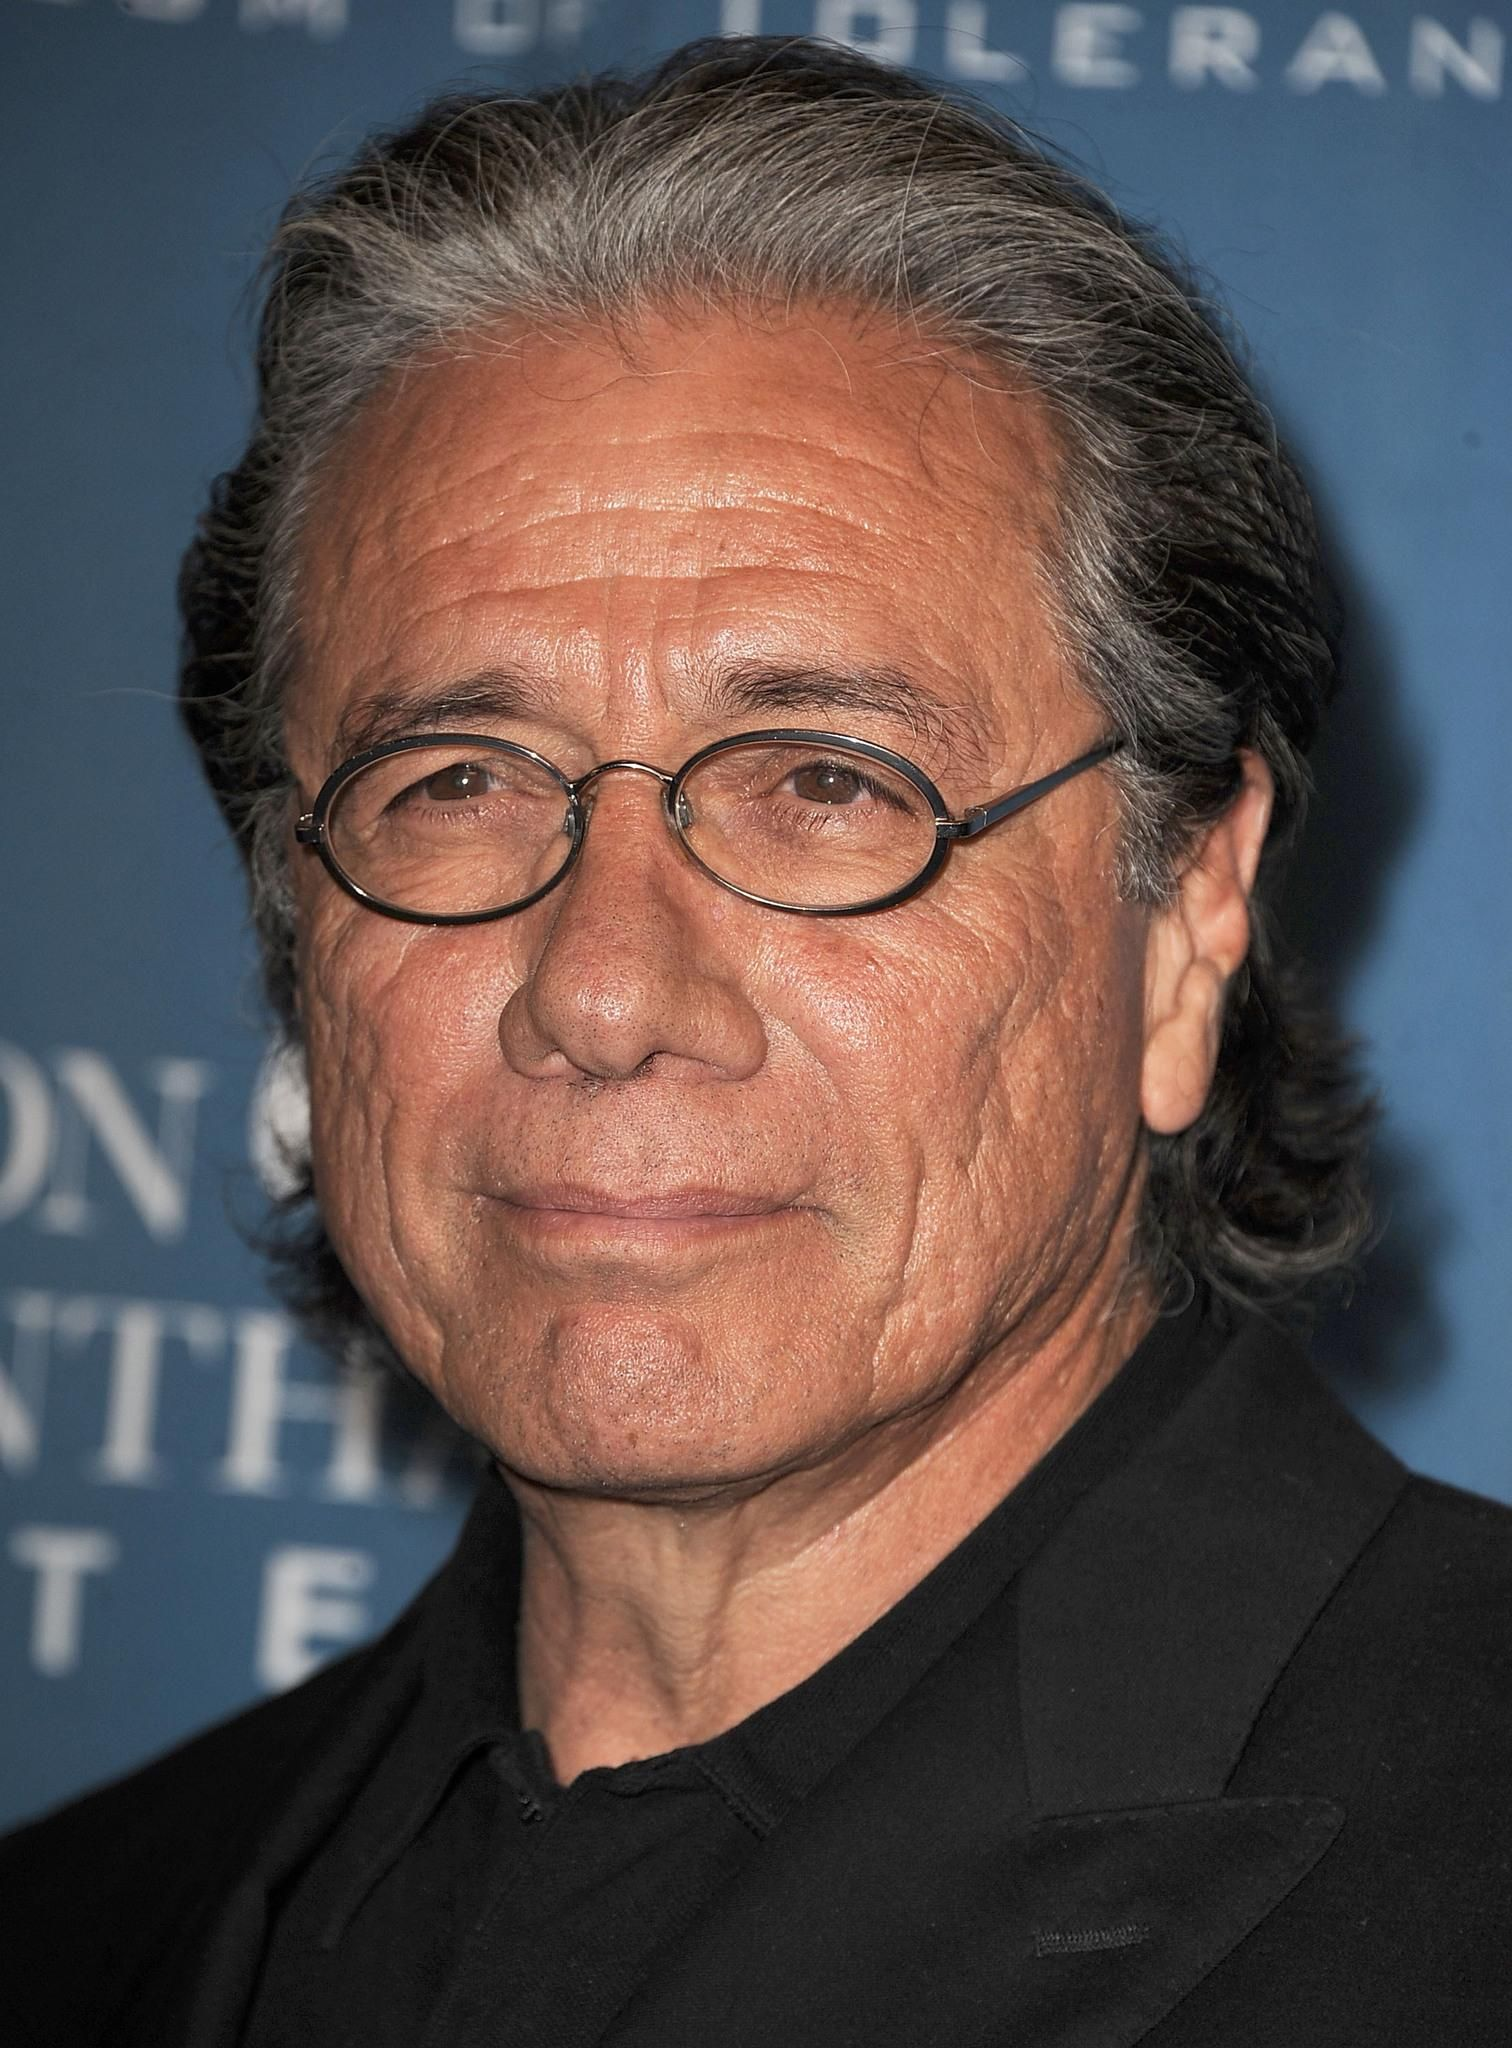 Edward James Olmos actor age 69 has d